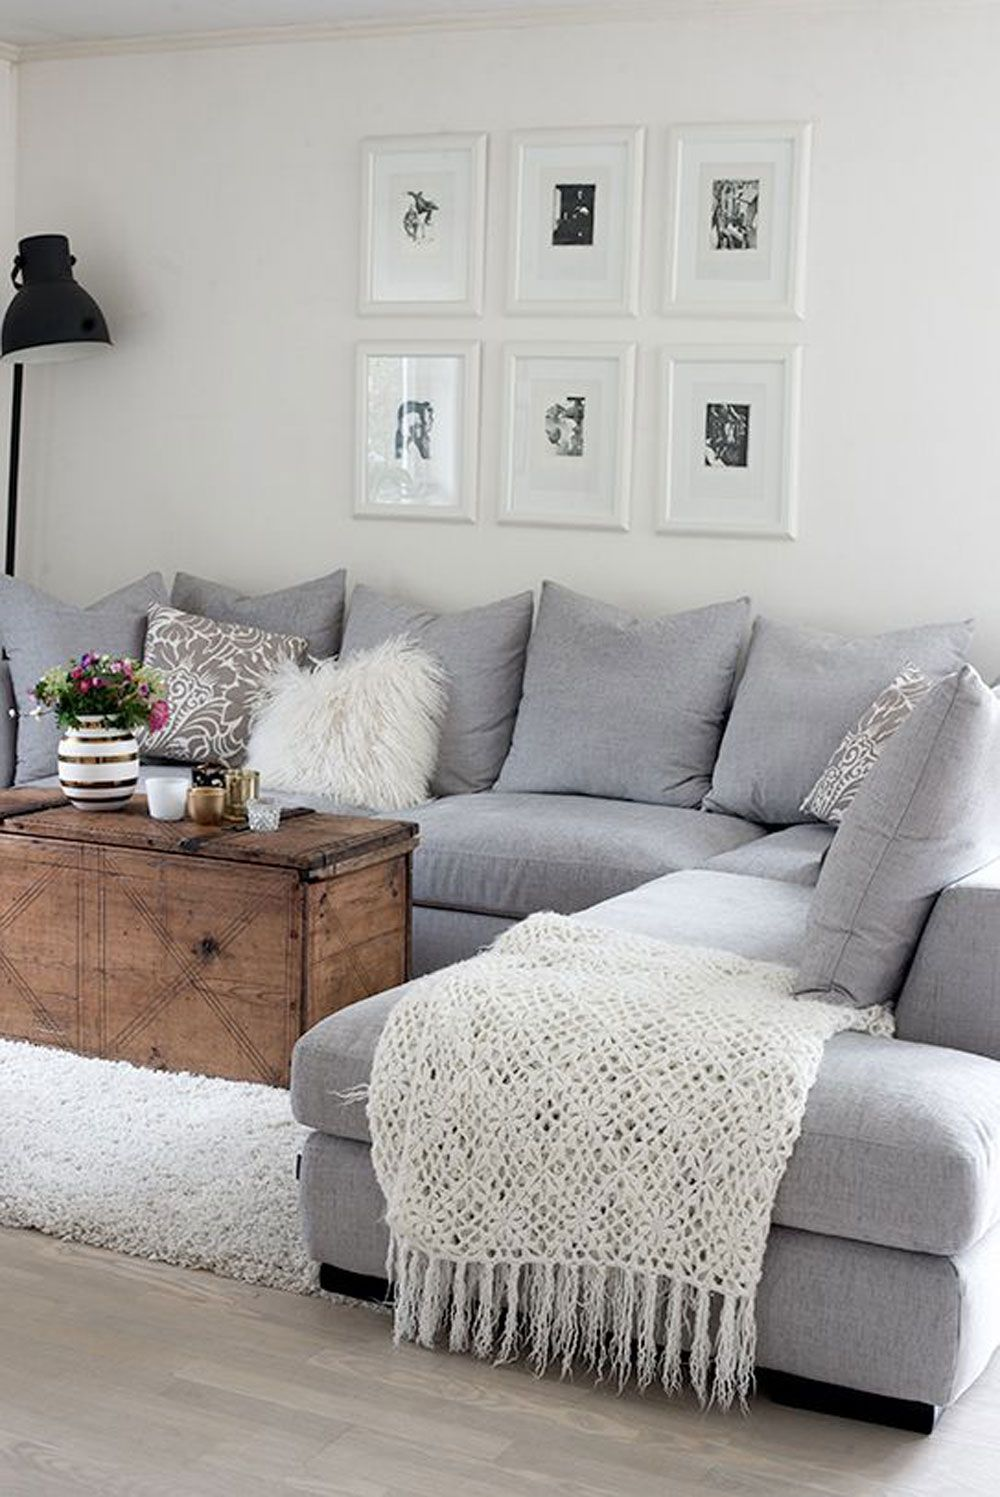 gray couch that makes it cozy and it could just be a throw or GDNLRYF.  be